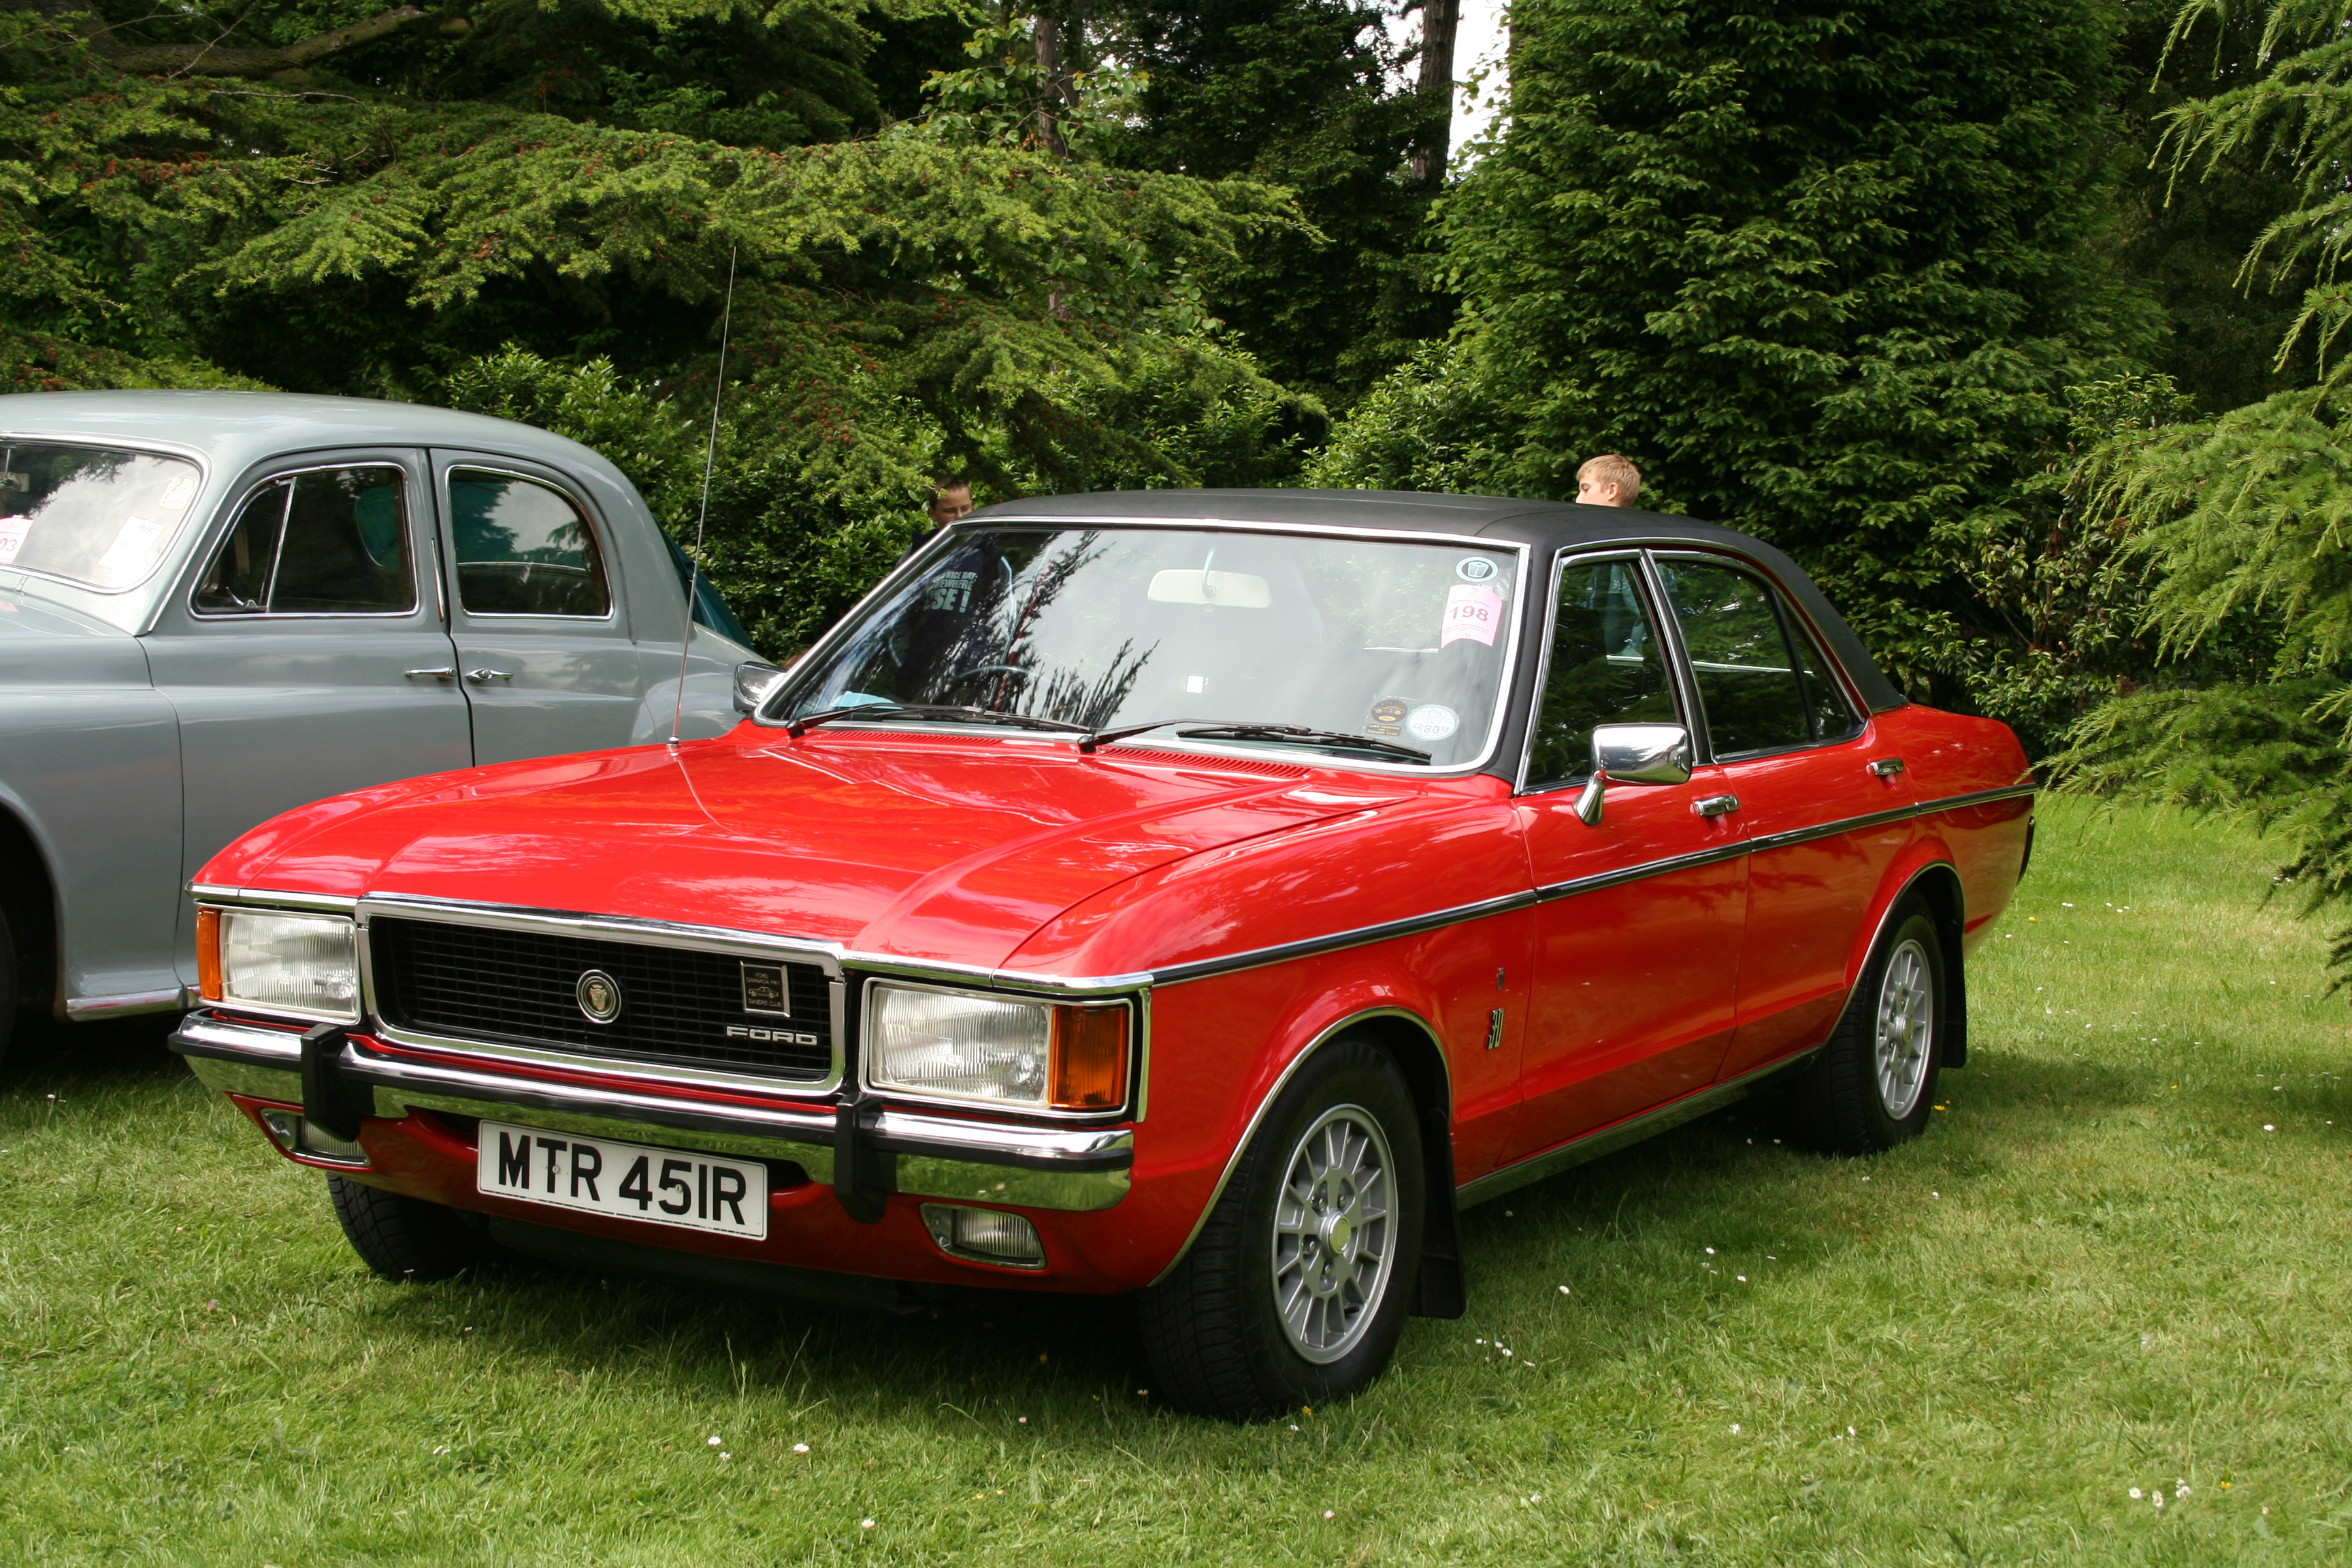 File:Ford Granada Mark I (Europe) 2.jpg - Wikimedia Commons